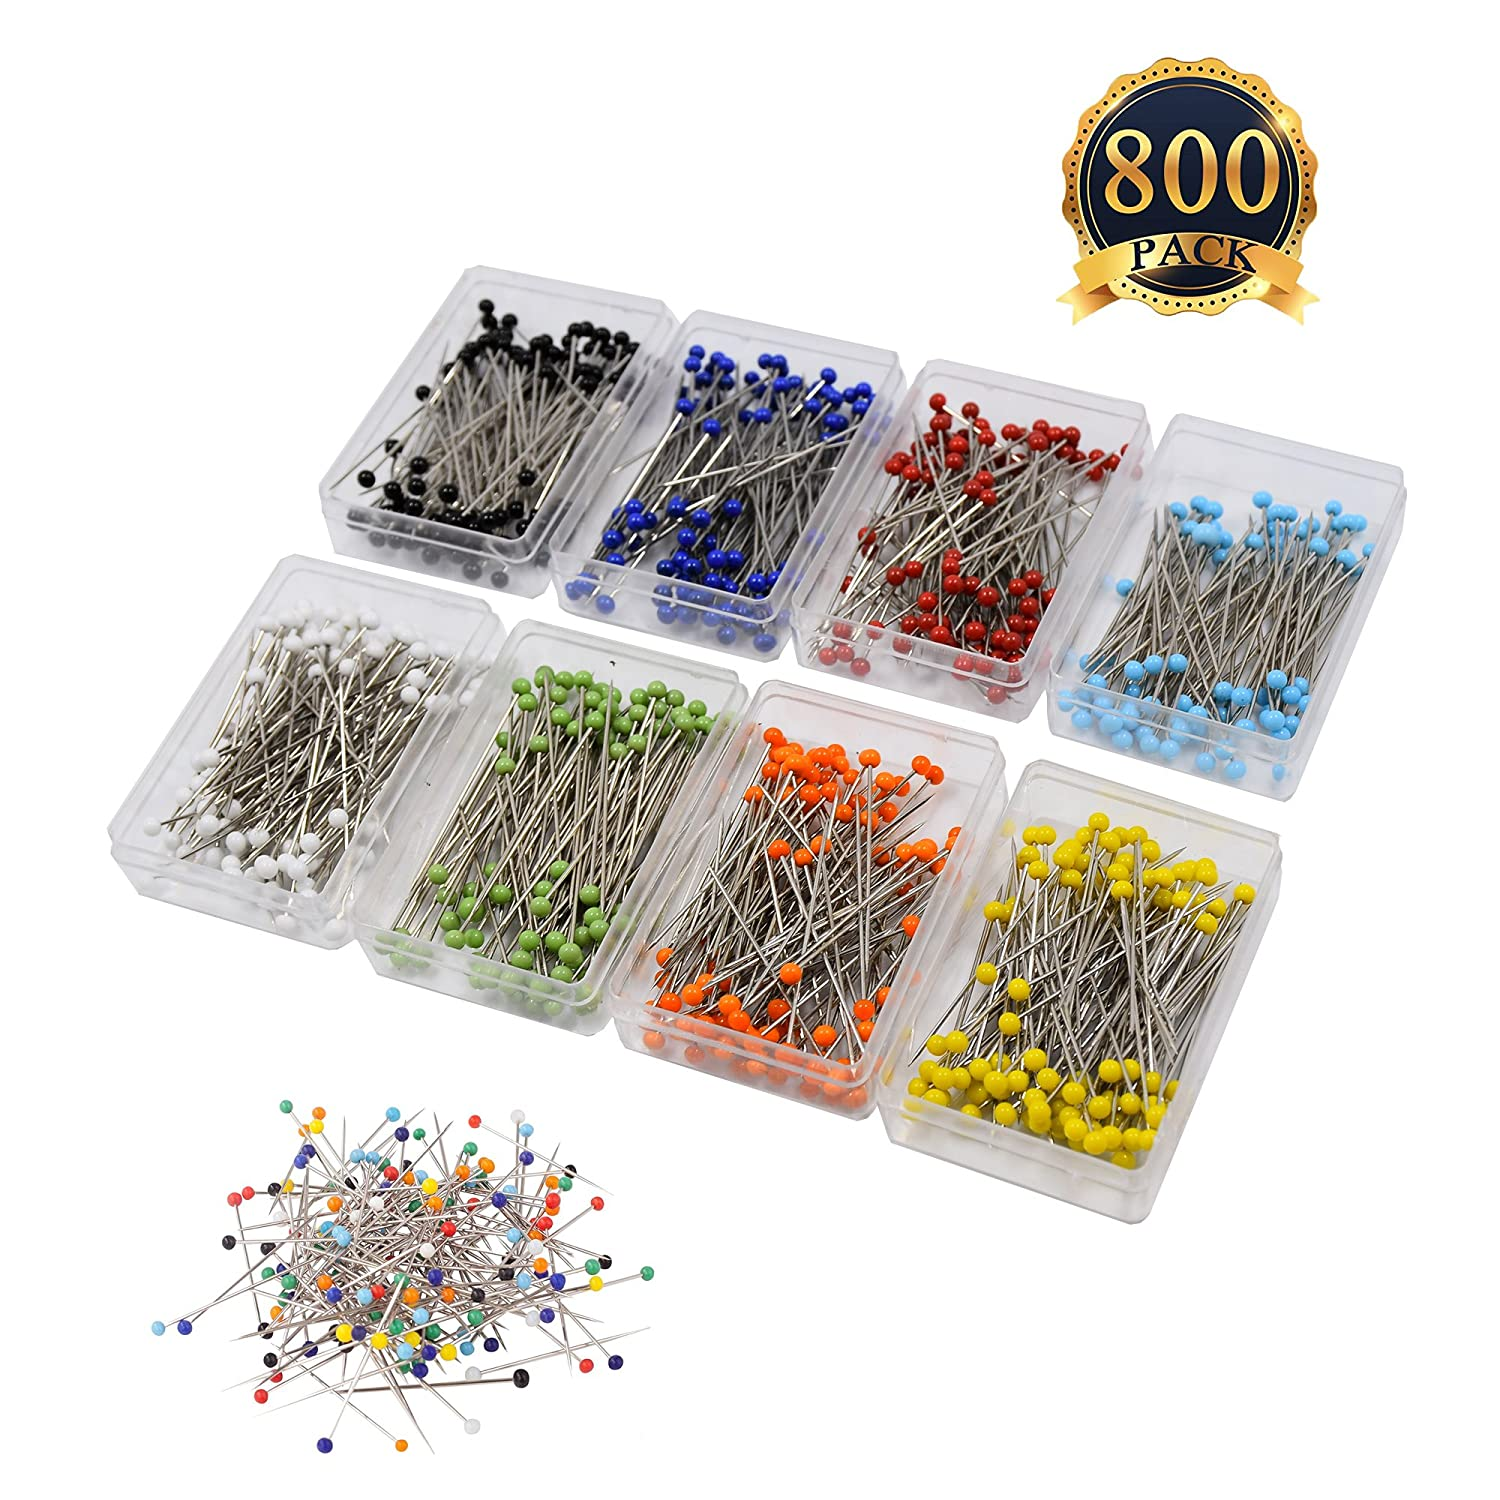 800 Pieces Sewing Pins 38mm multicolor Glass Ball Head Pins for Dressmaking Jewelry Components Flower Decoration With Transparent Cases, 8 Colors COMEMAKA